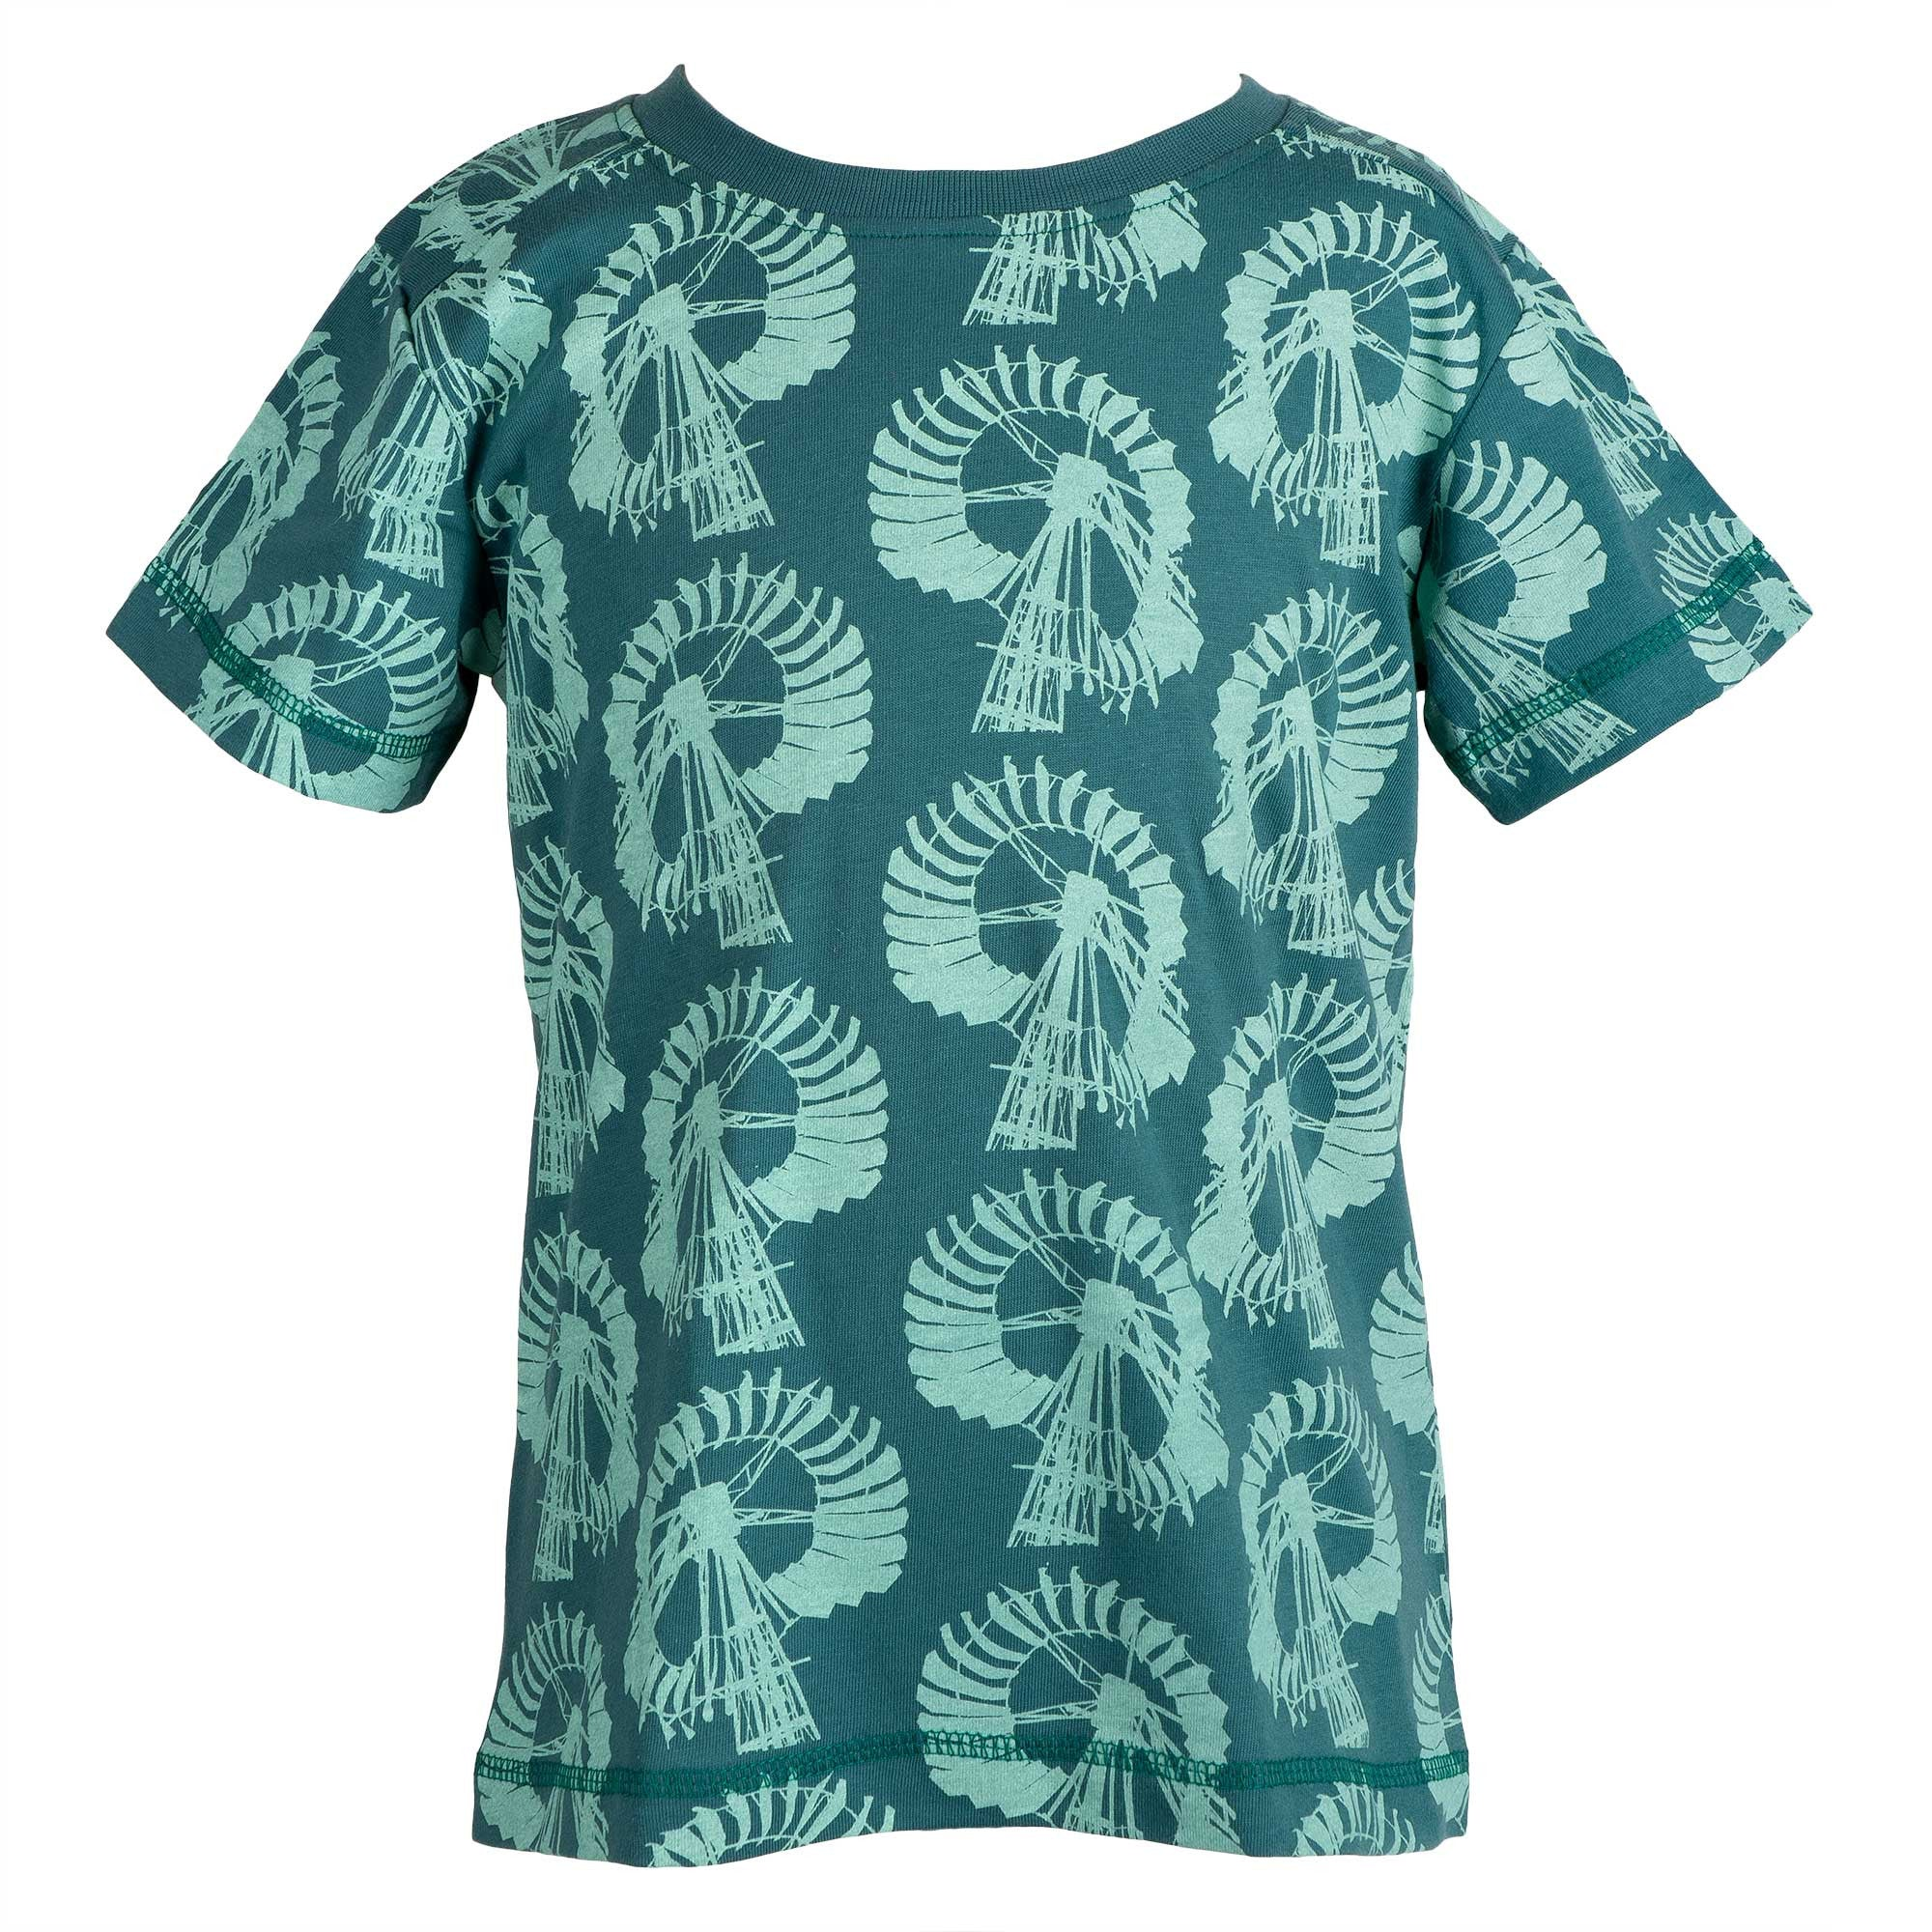 Green windmill t-shirt